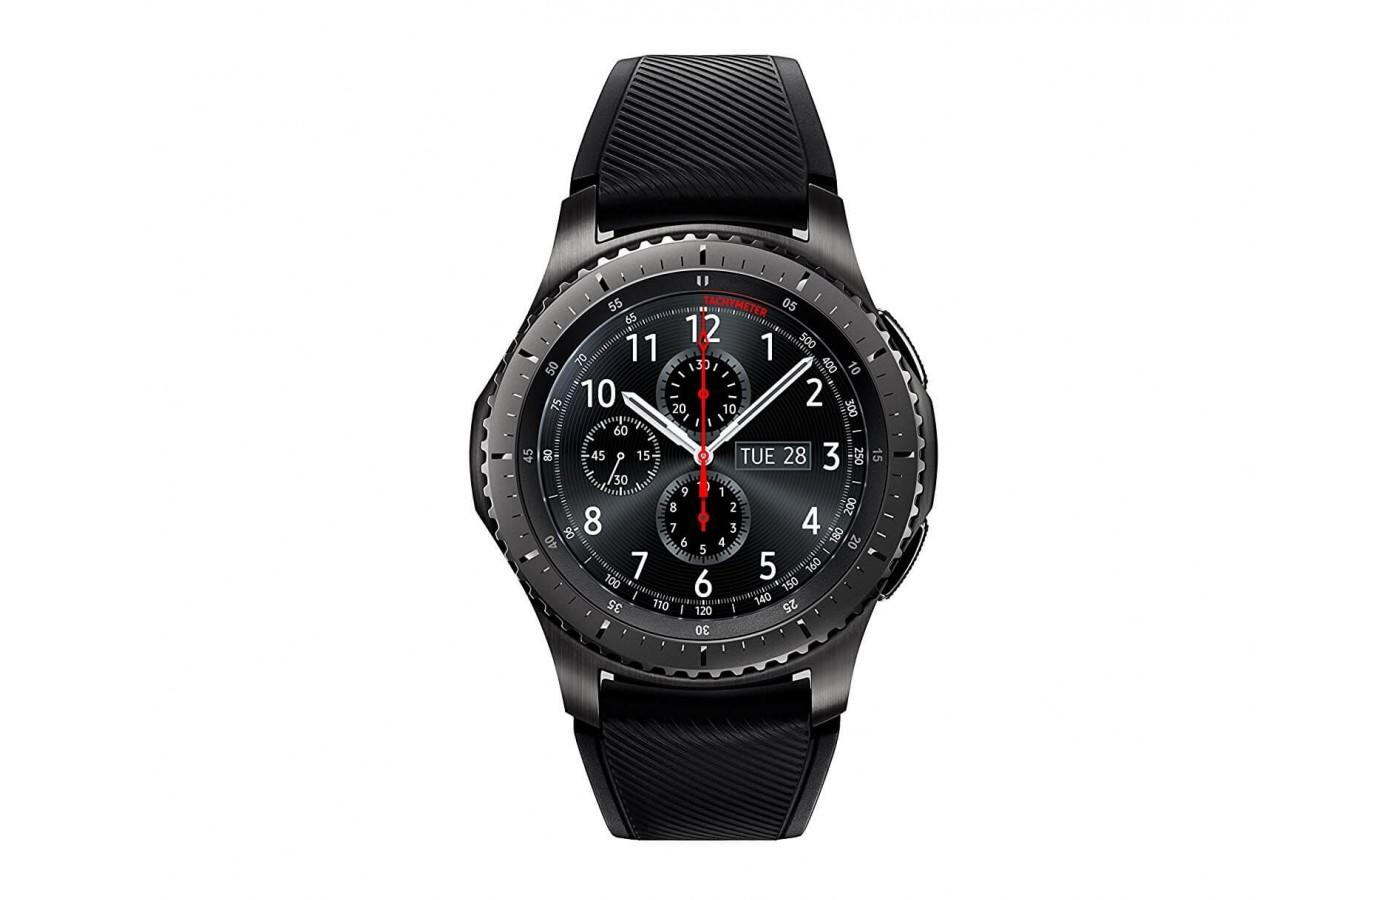 the Samsung Gear S3 Frontier watch face is always on